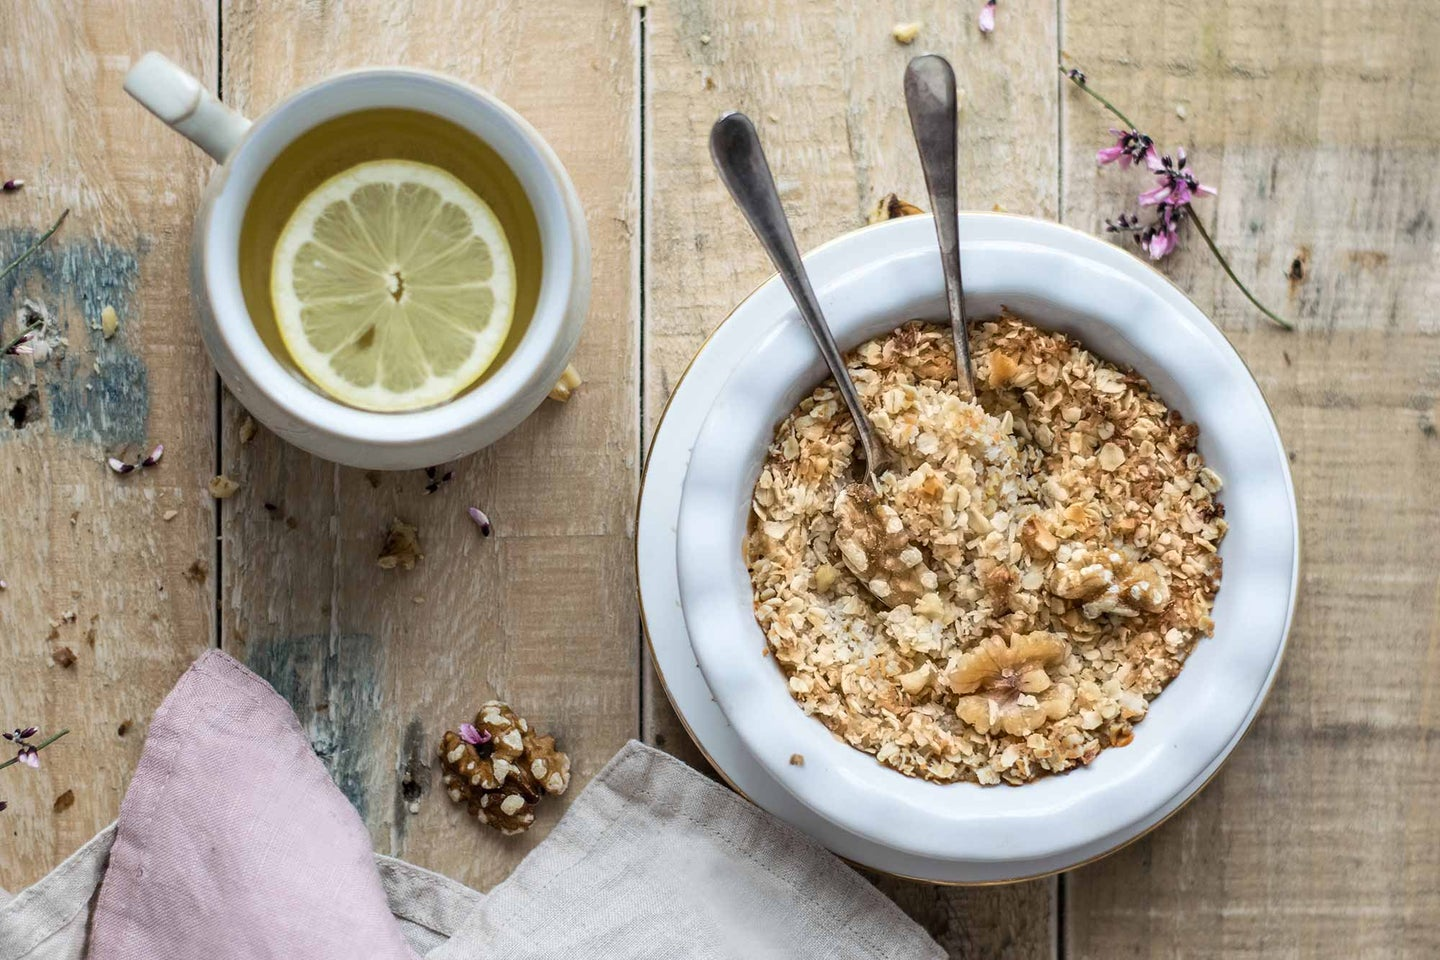 Bowl of oatmeal and cup of tea with lemon.